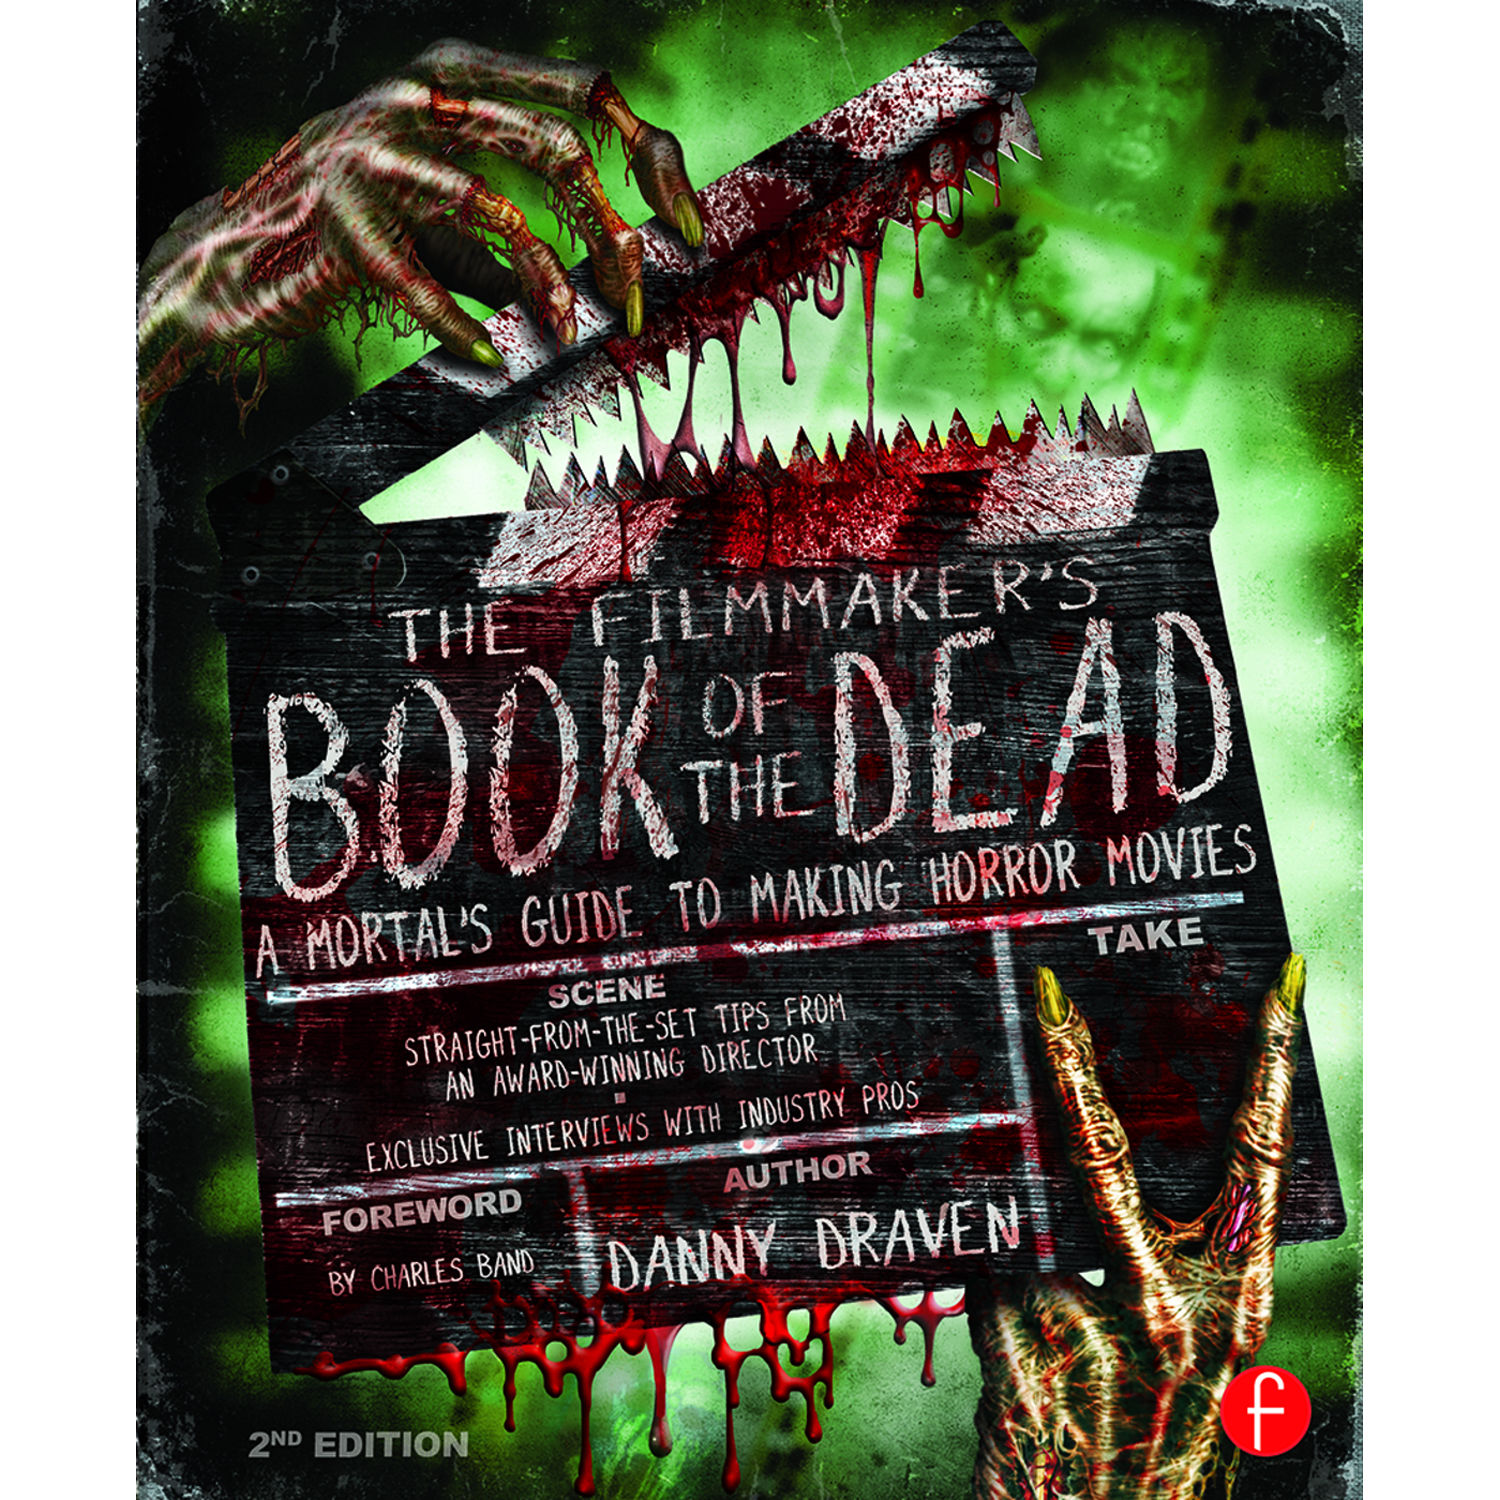 Focal Press Book: The Filmmaker's Book of the Dead: A Mortal's Guide to  Making